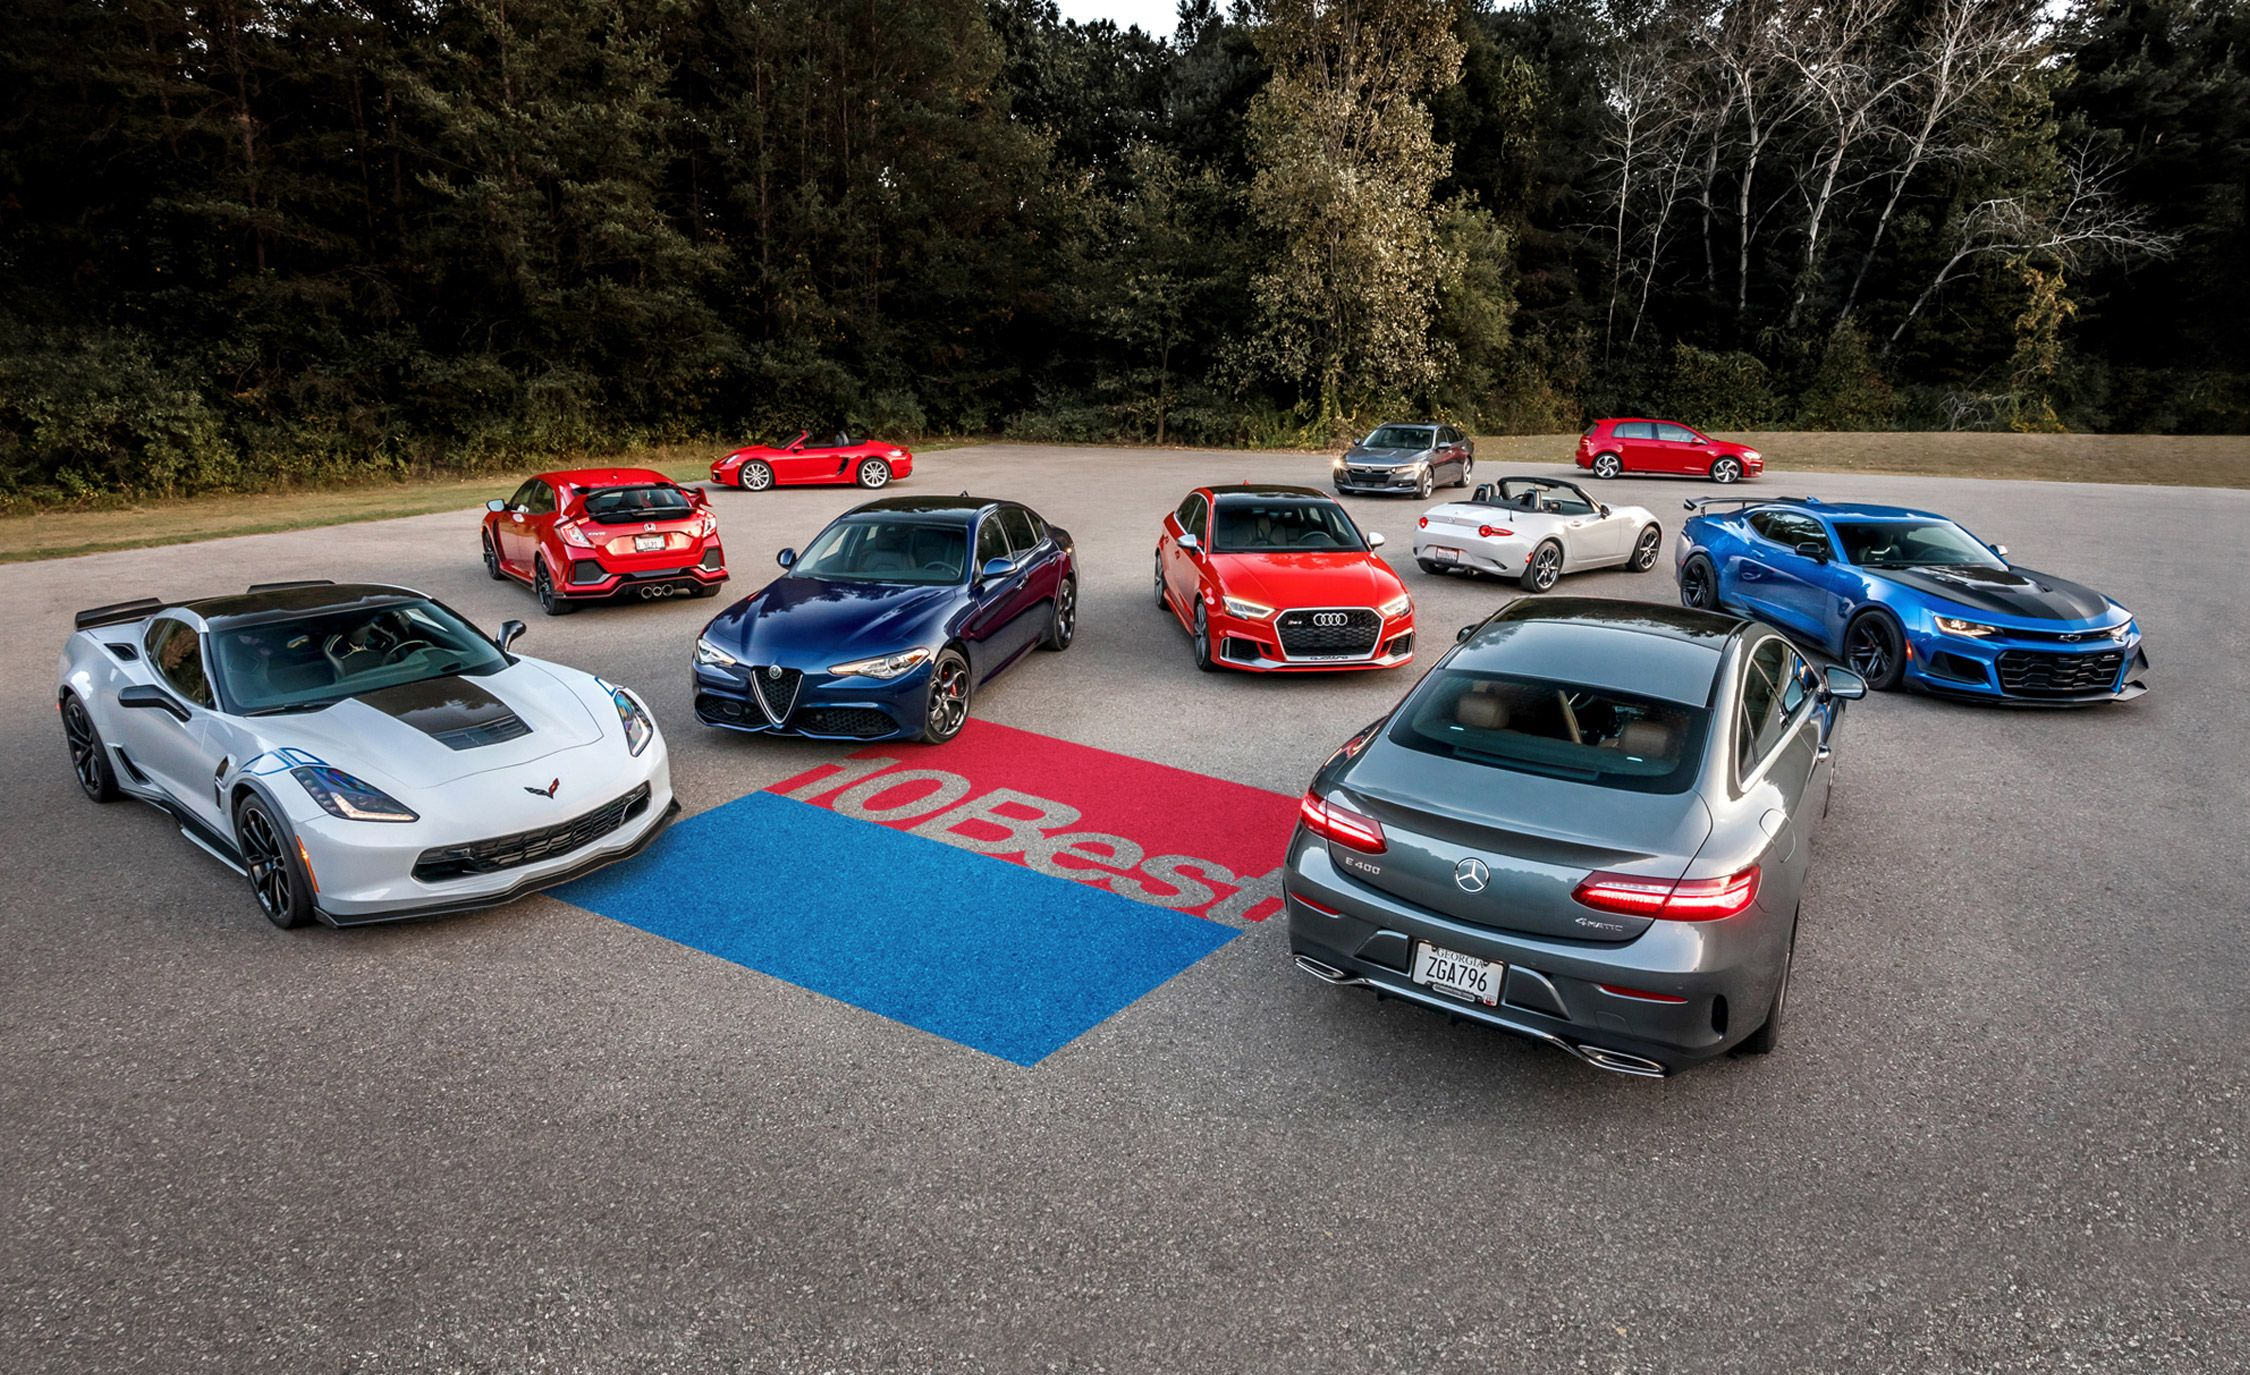 2018 10best cars the best cars for sale in america today feature